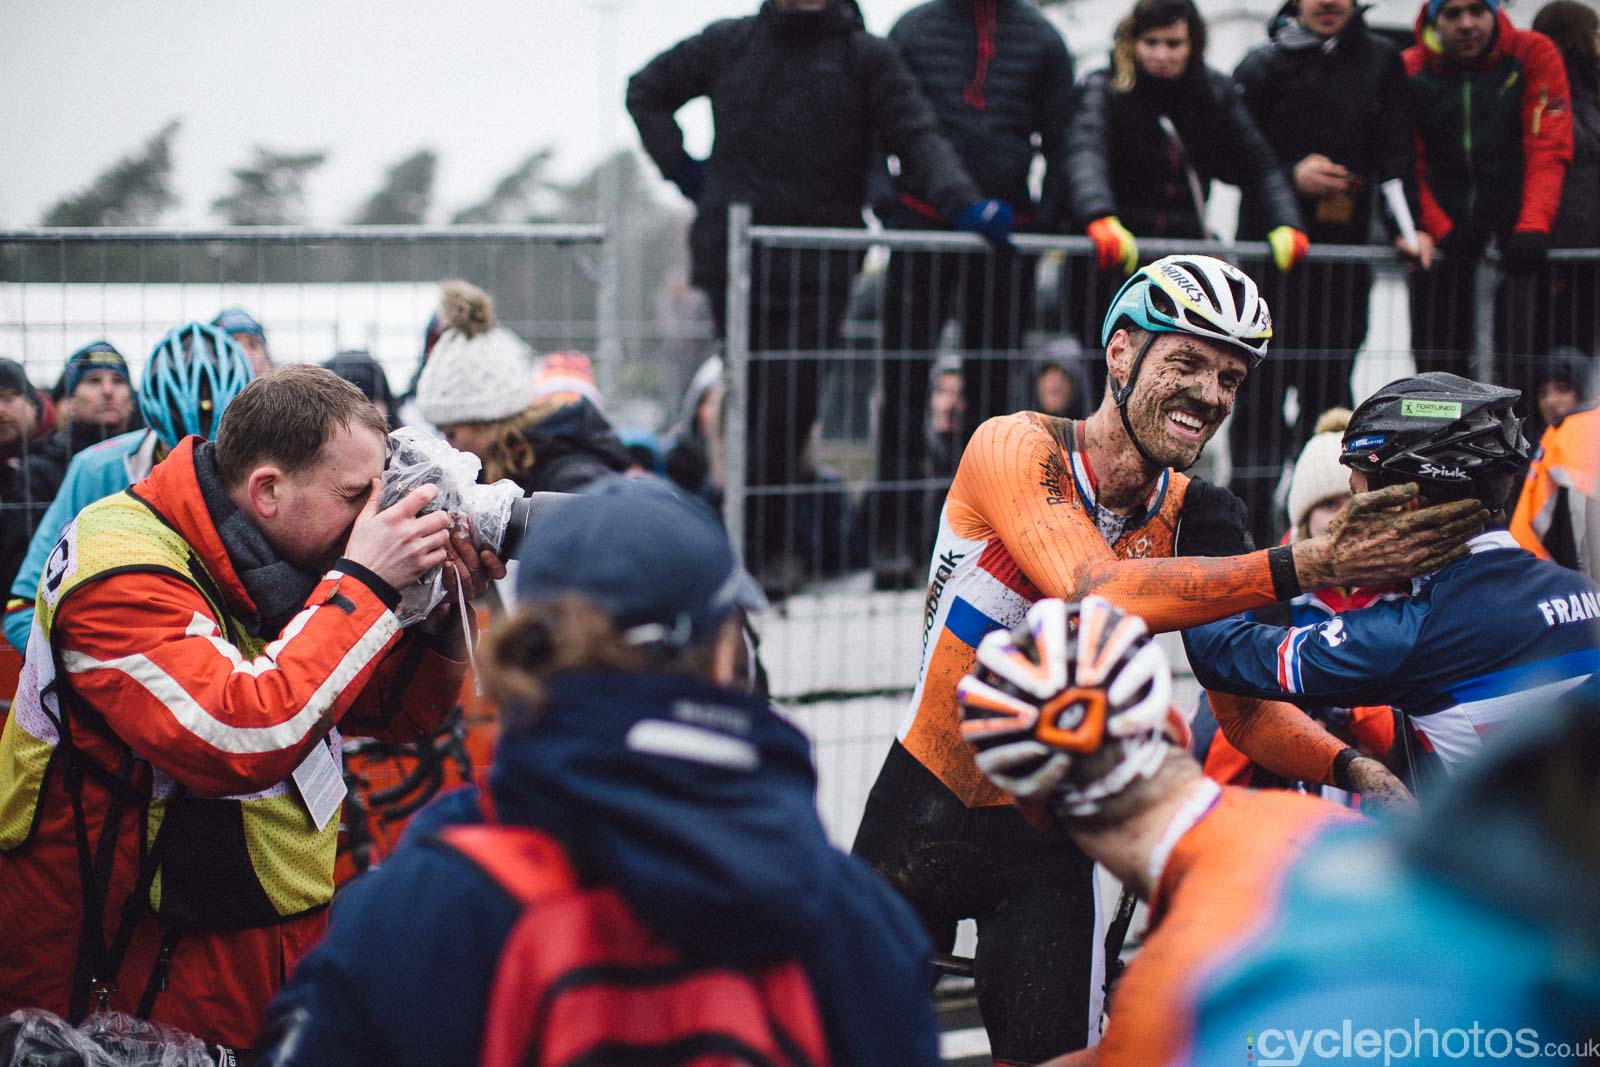 2016-cyclephotos-cyclocross-world-championships-zolder-160908-lars-boom